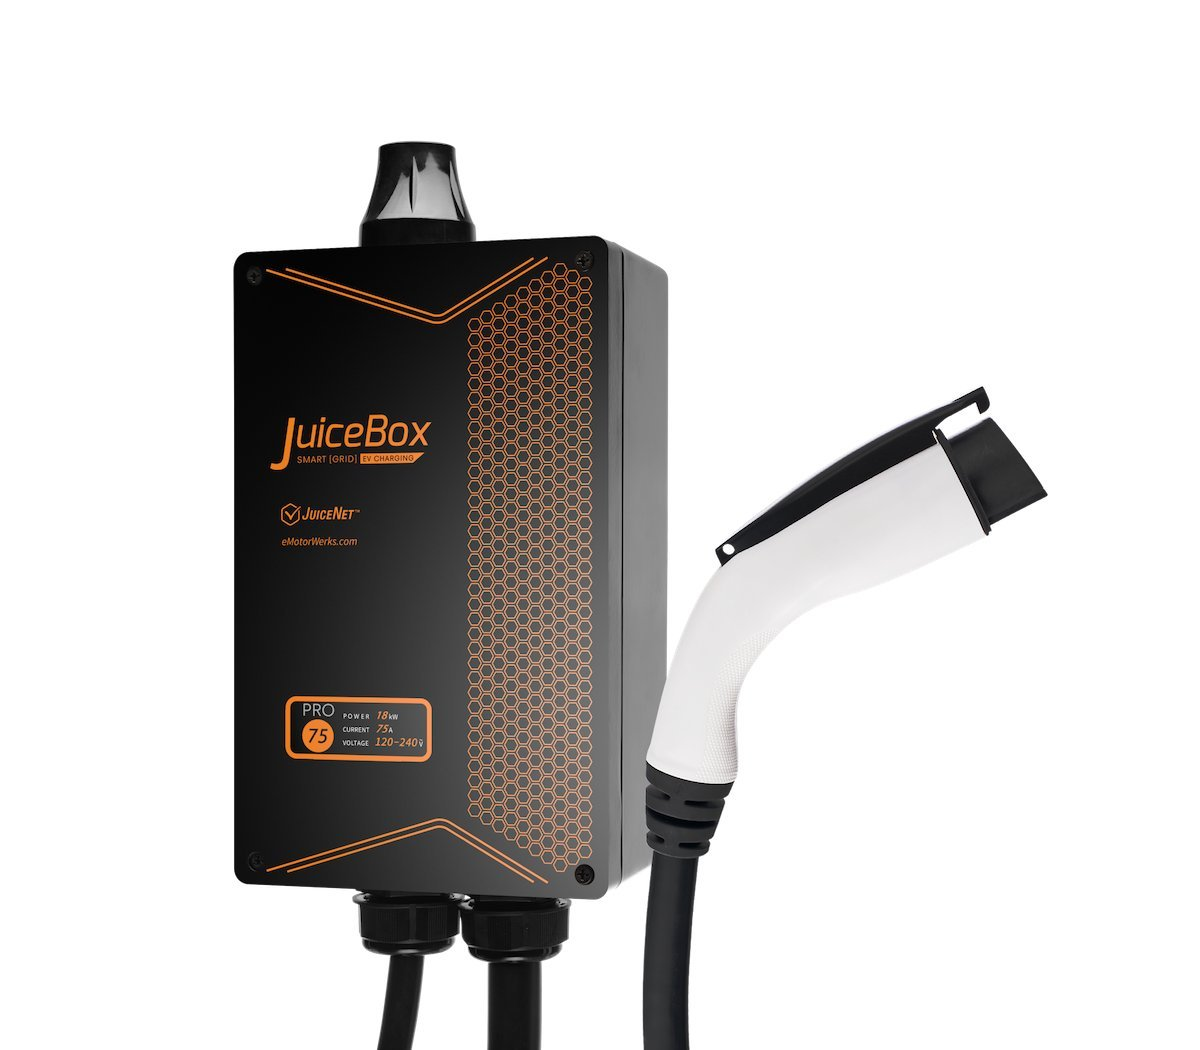 JuiceBox Pro 75A WiFi-equipped Plug-in Electric Vehicle Charger / Charging Station with 24-foot cable and THHN Input Whip for Hardwire